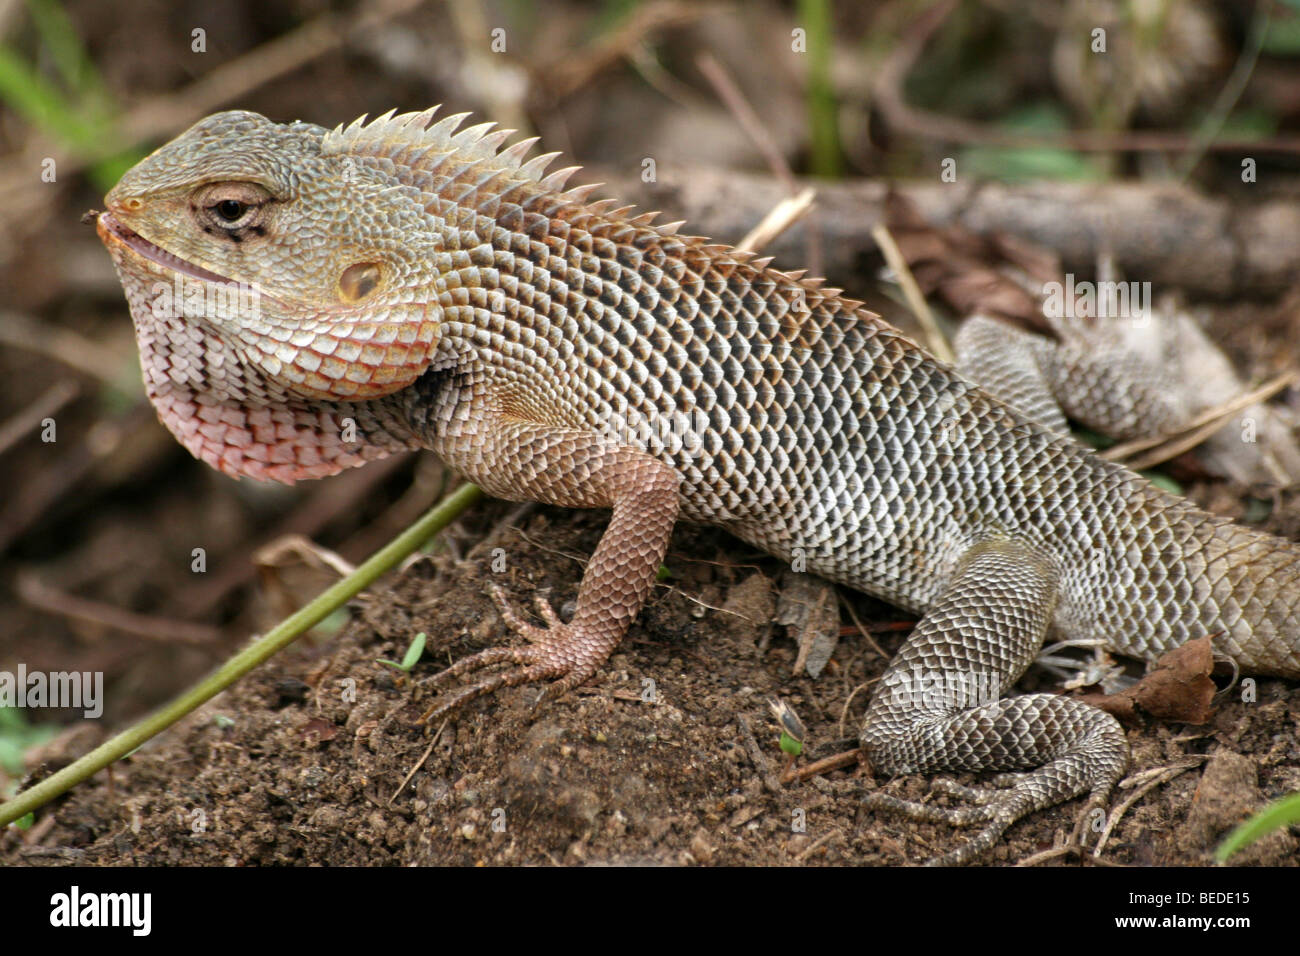 Oriental Garden Lizard Stock Photos & Oriental Garden Lizard Stock ...